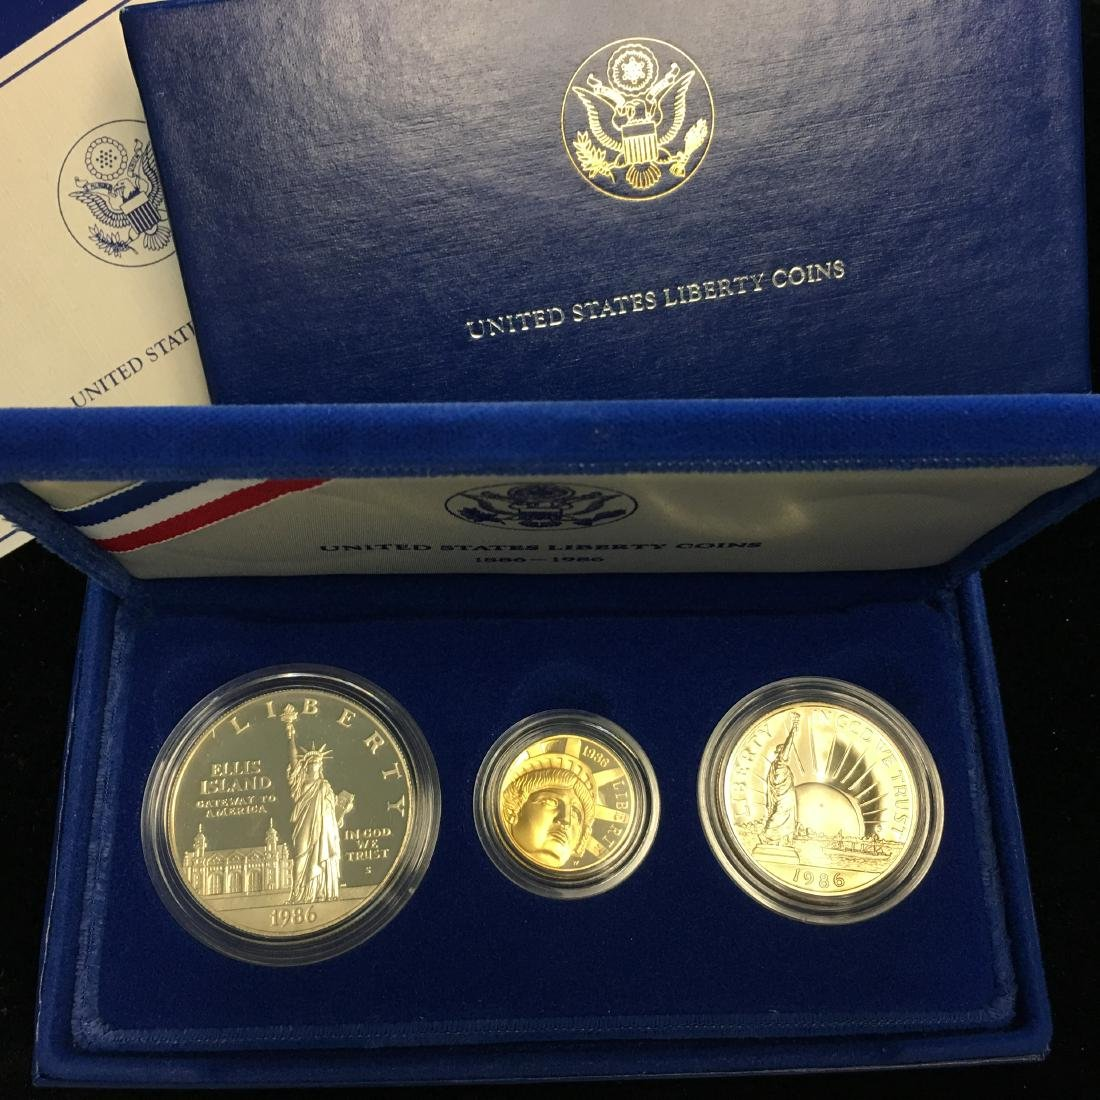 1986 U.S. Statue of Liberty 3 Coin Proof Set 1886-1986